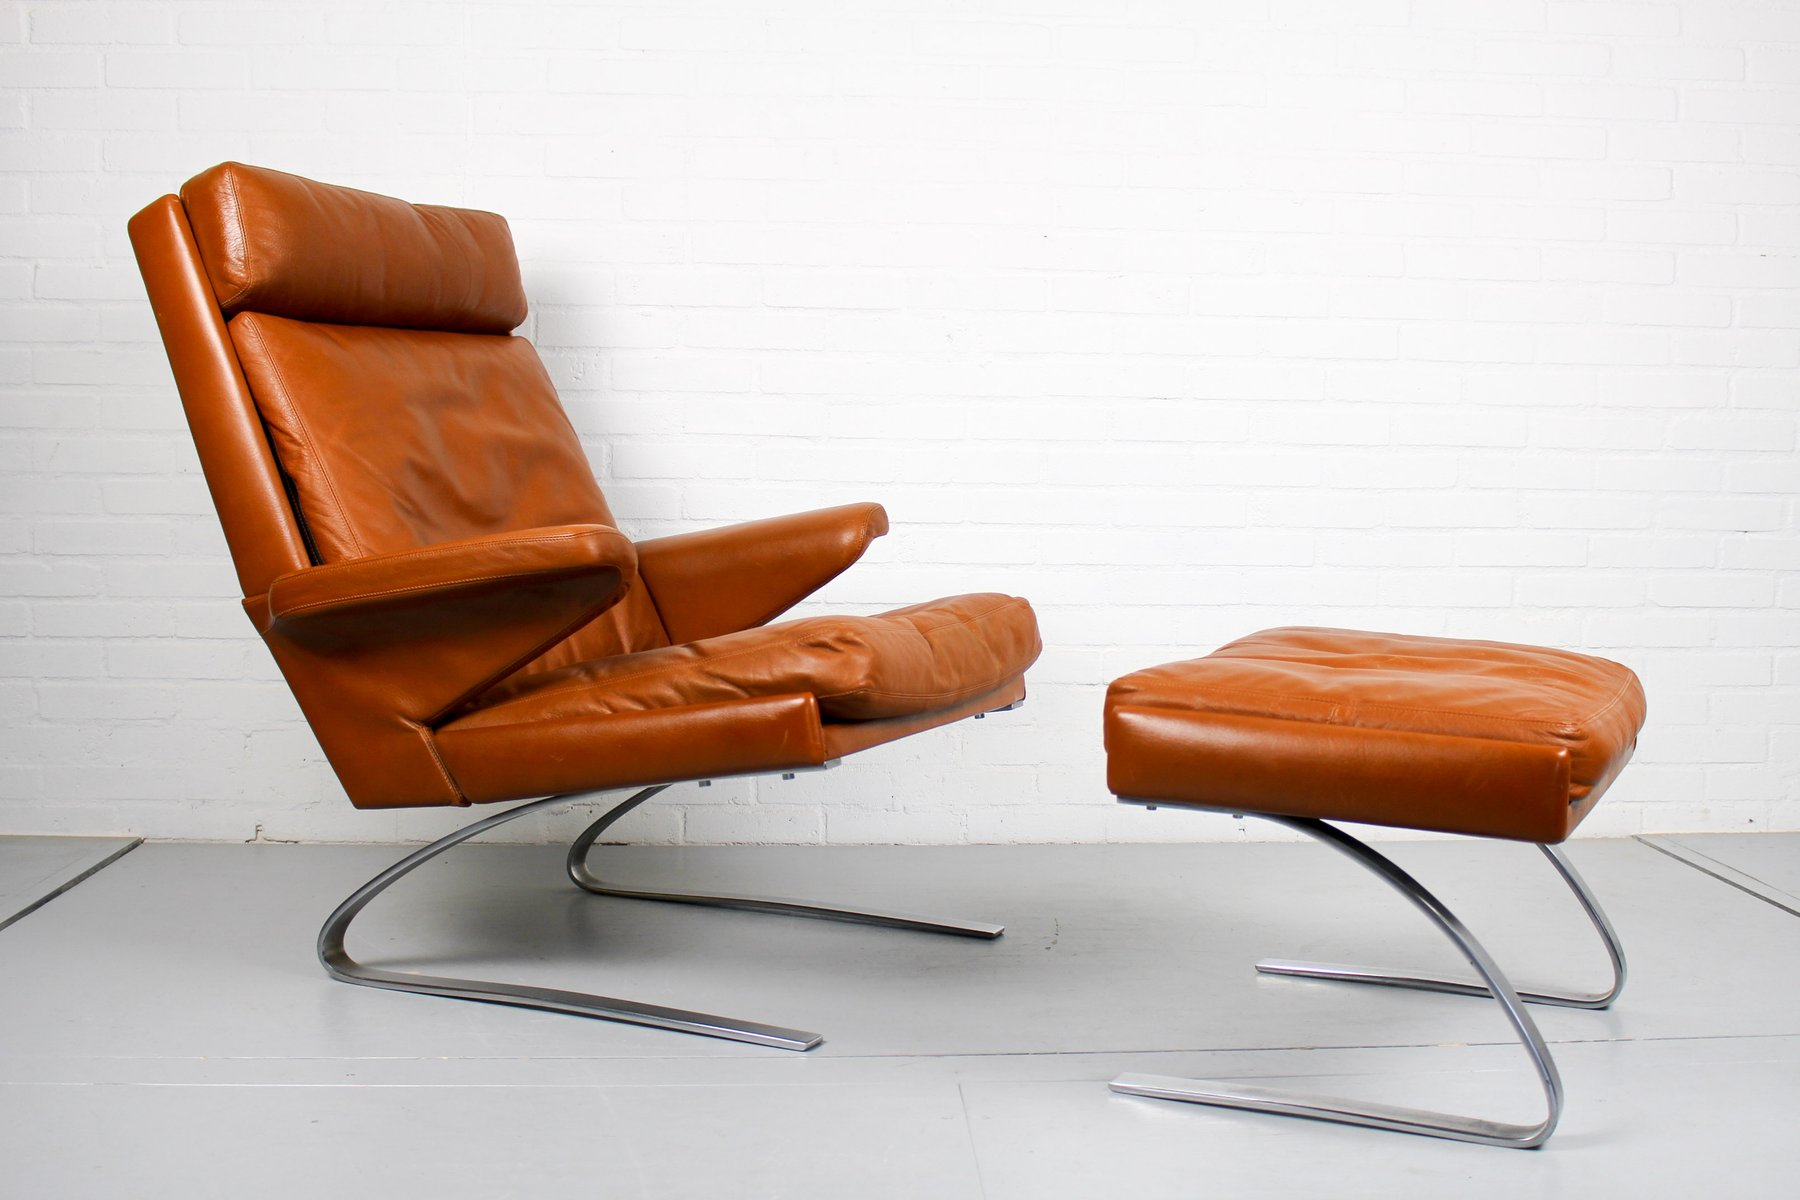 Leather Lounge Chair with Ottoman by Reinhold Adolf for Cor, 1960s